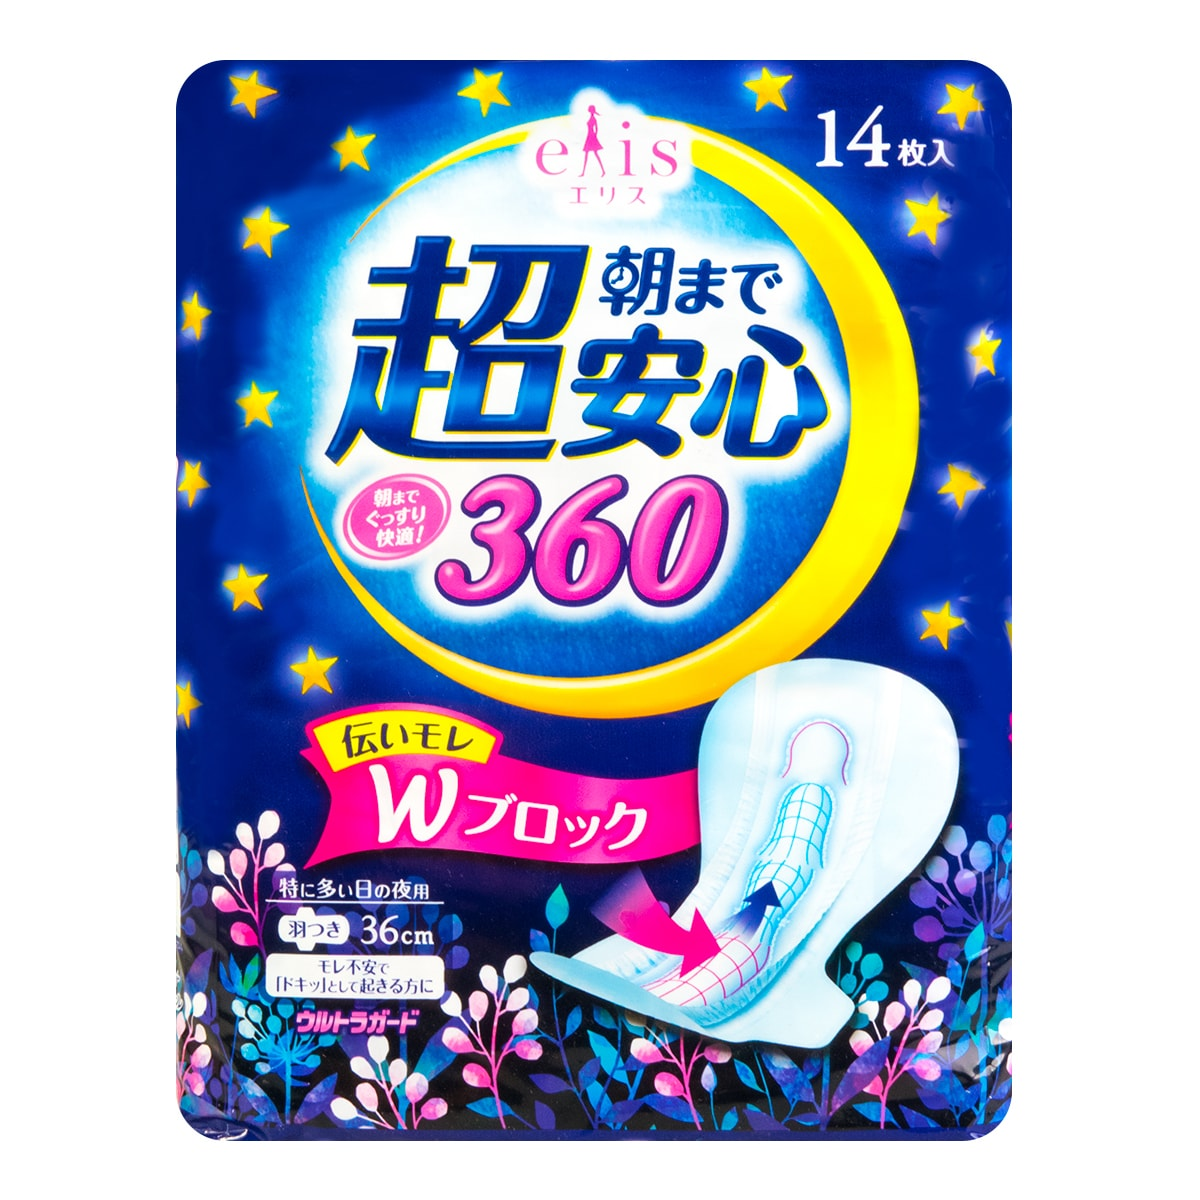 ELIS ULTRA GUARD Sanitary Napkin Heavy Day Overnight 360 with Wing 36cm 14pads